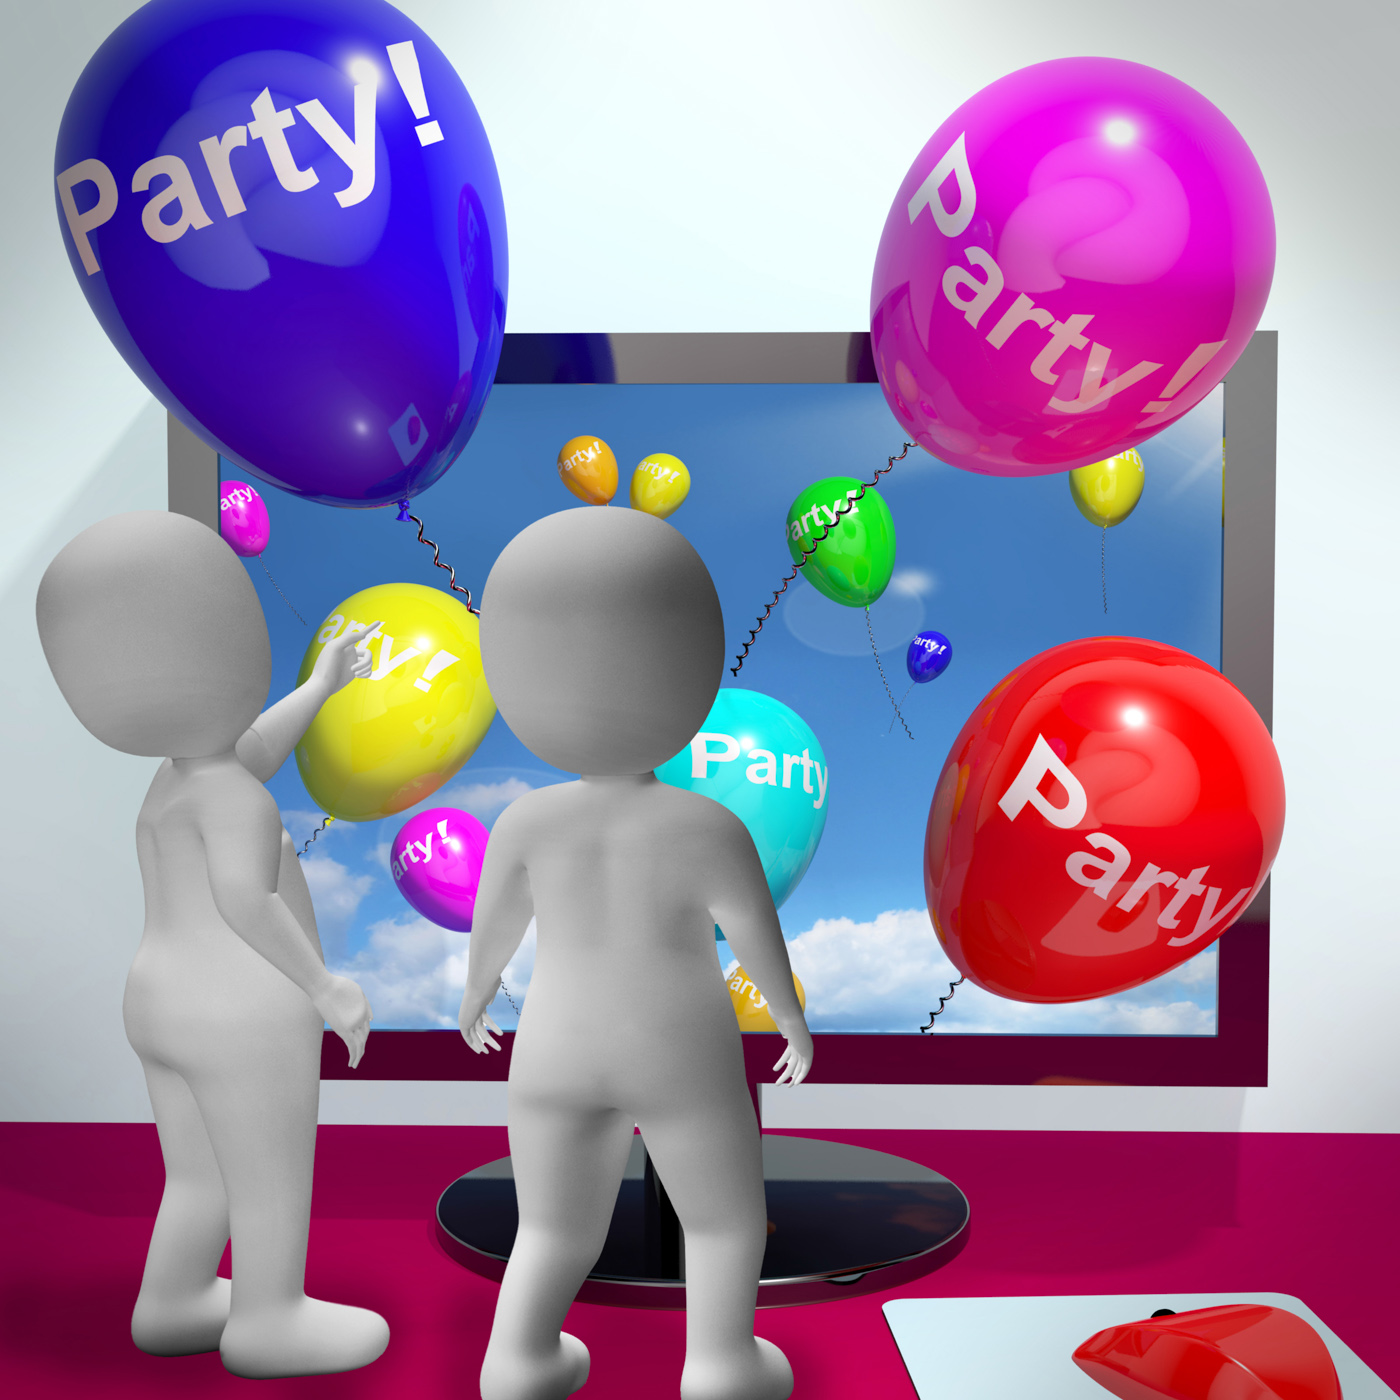 Balloons With Party Text Showing Invitations Sent Online, Anniversary, Balloons, Birthday, Celebrate, HQ Photo